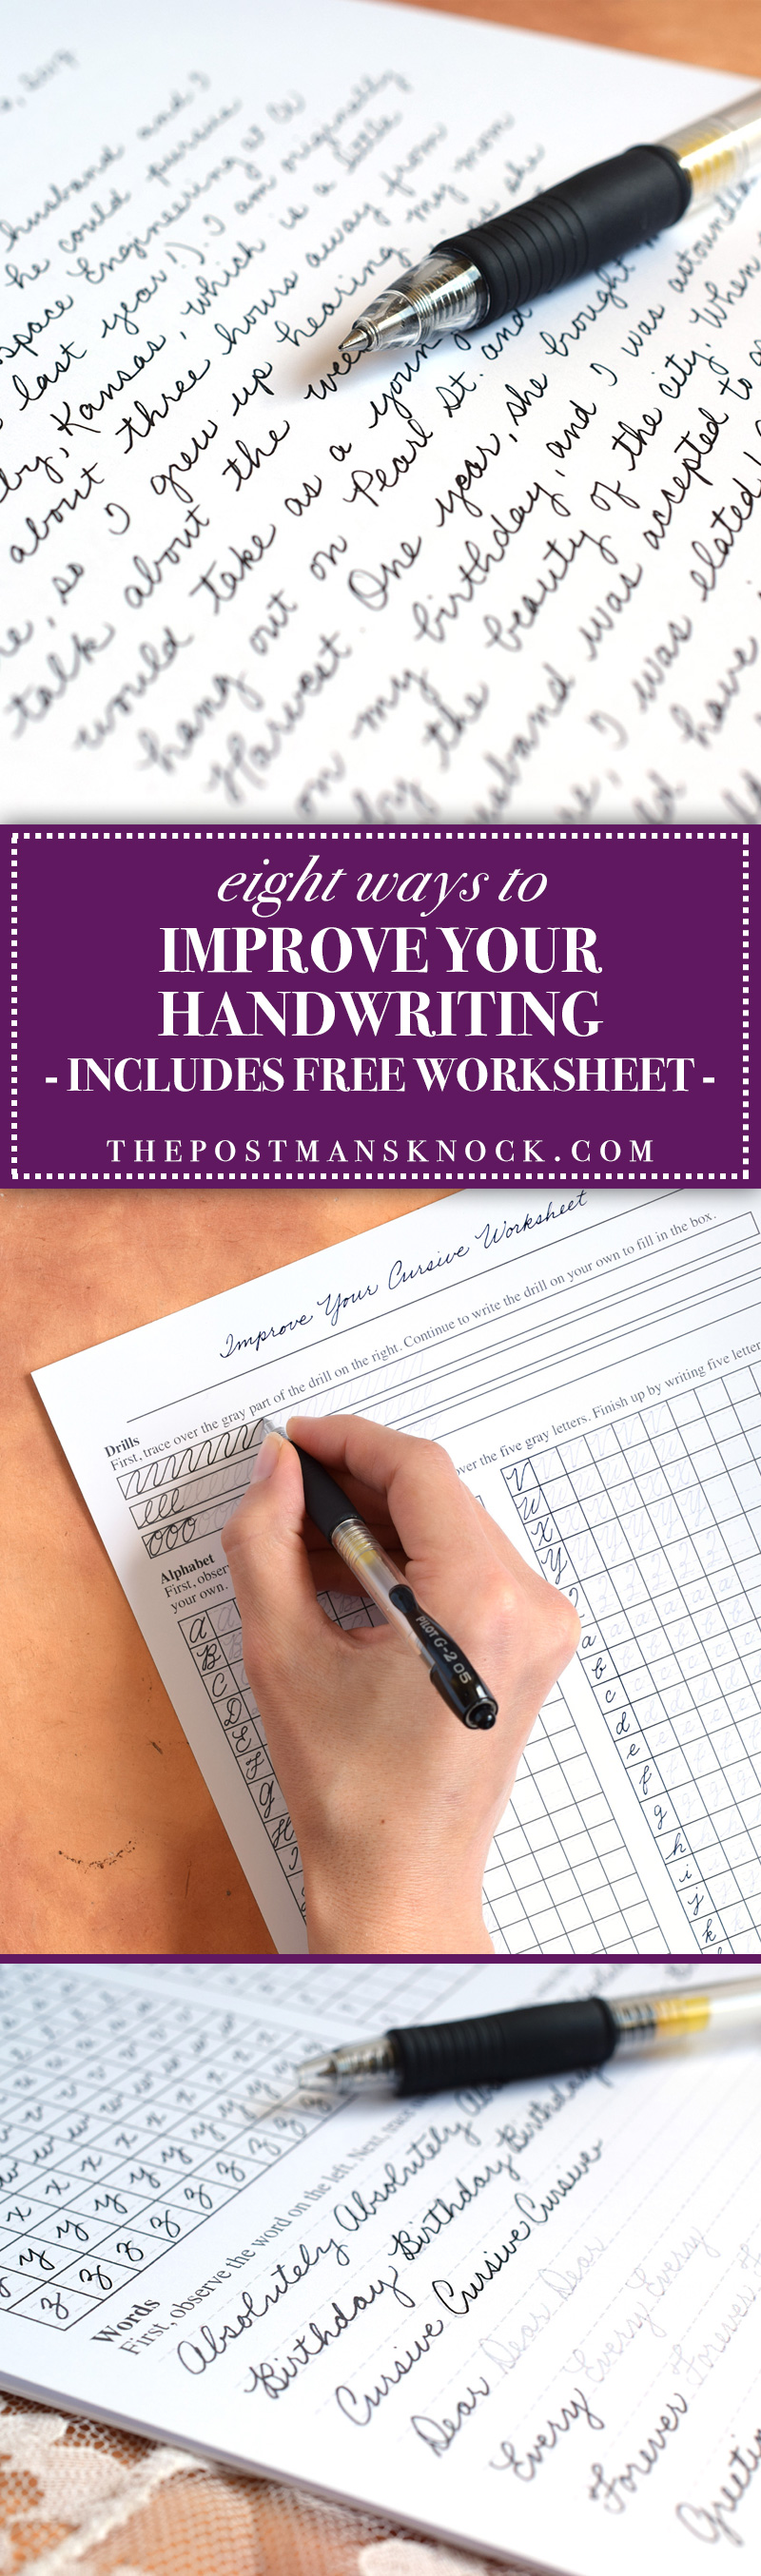 Uncategorized Free Make Your Own Handwriting Worksheets tips to improve your handwriting plus a free worksheet the 8 postmans knock